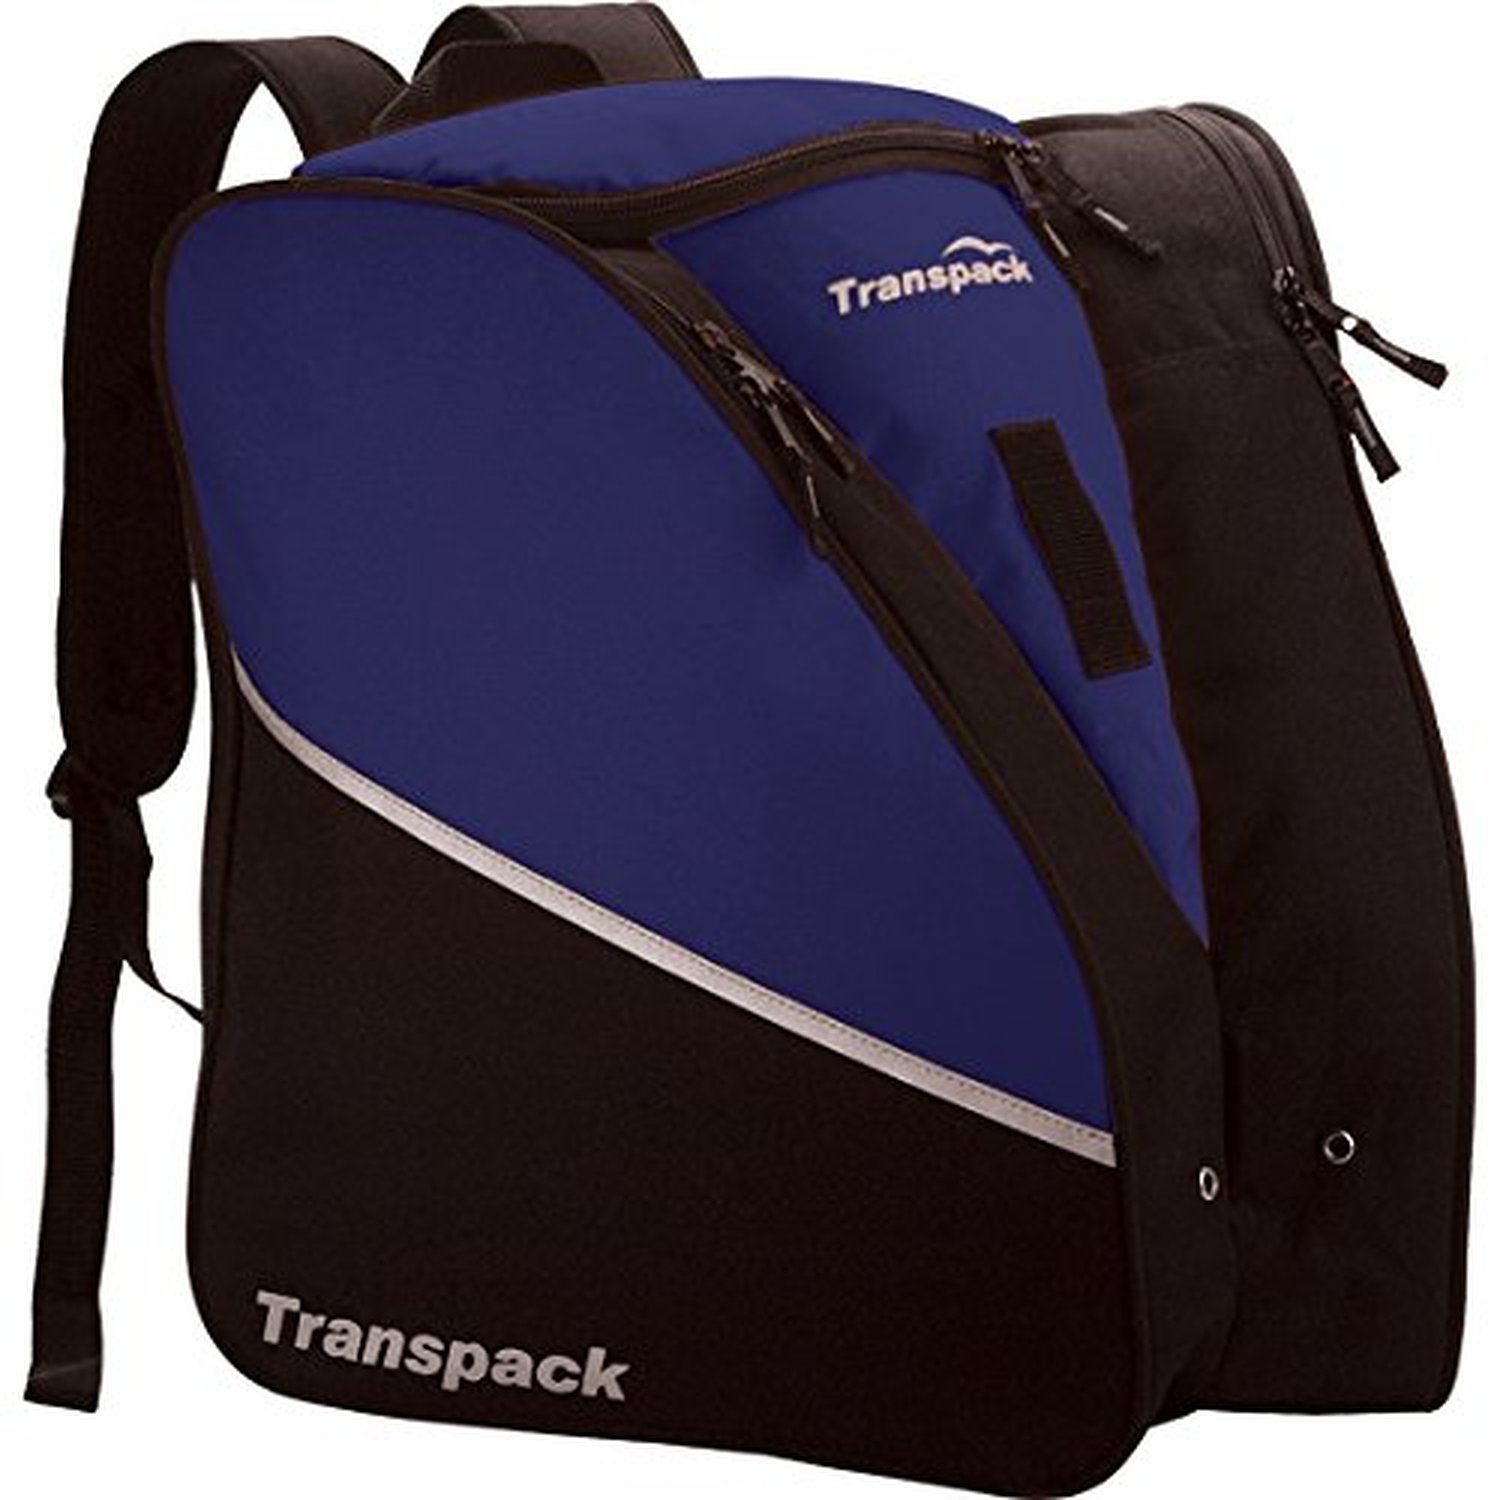 Transpack 3321 Edge Boot Bag by Transpack